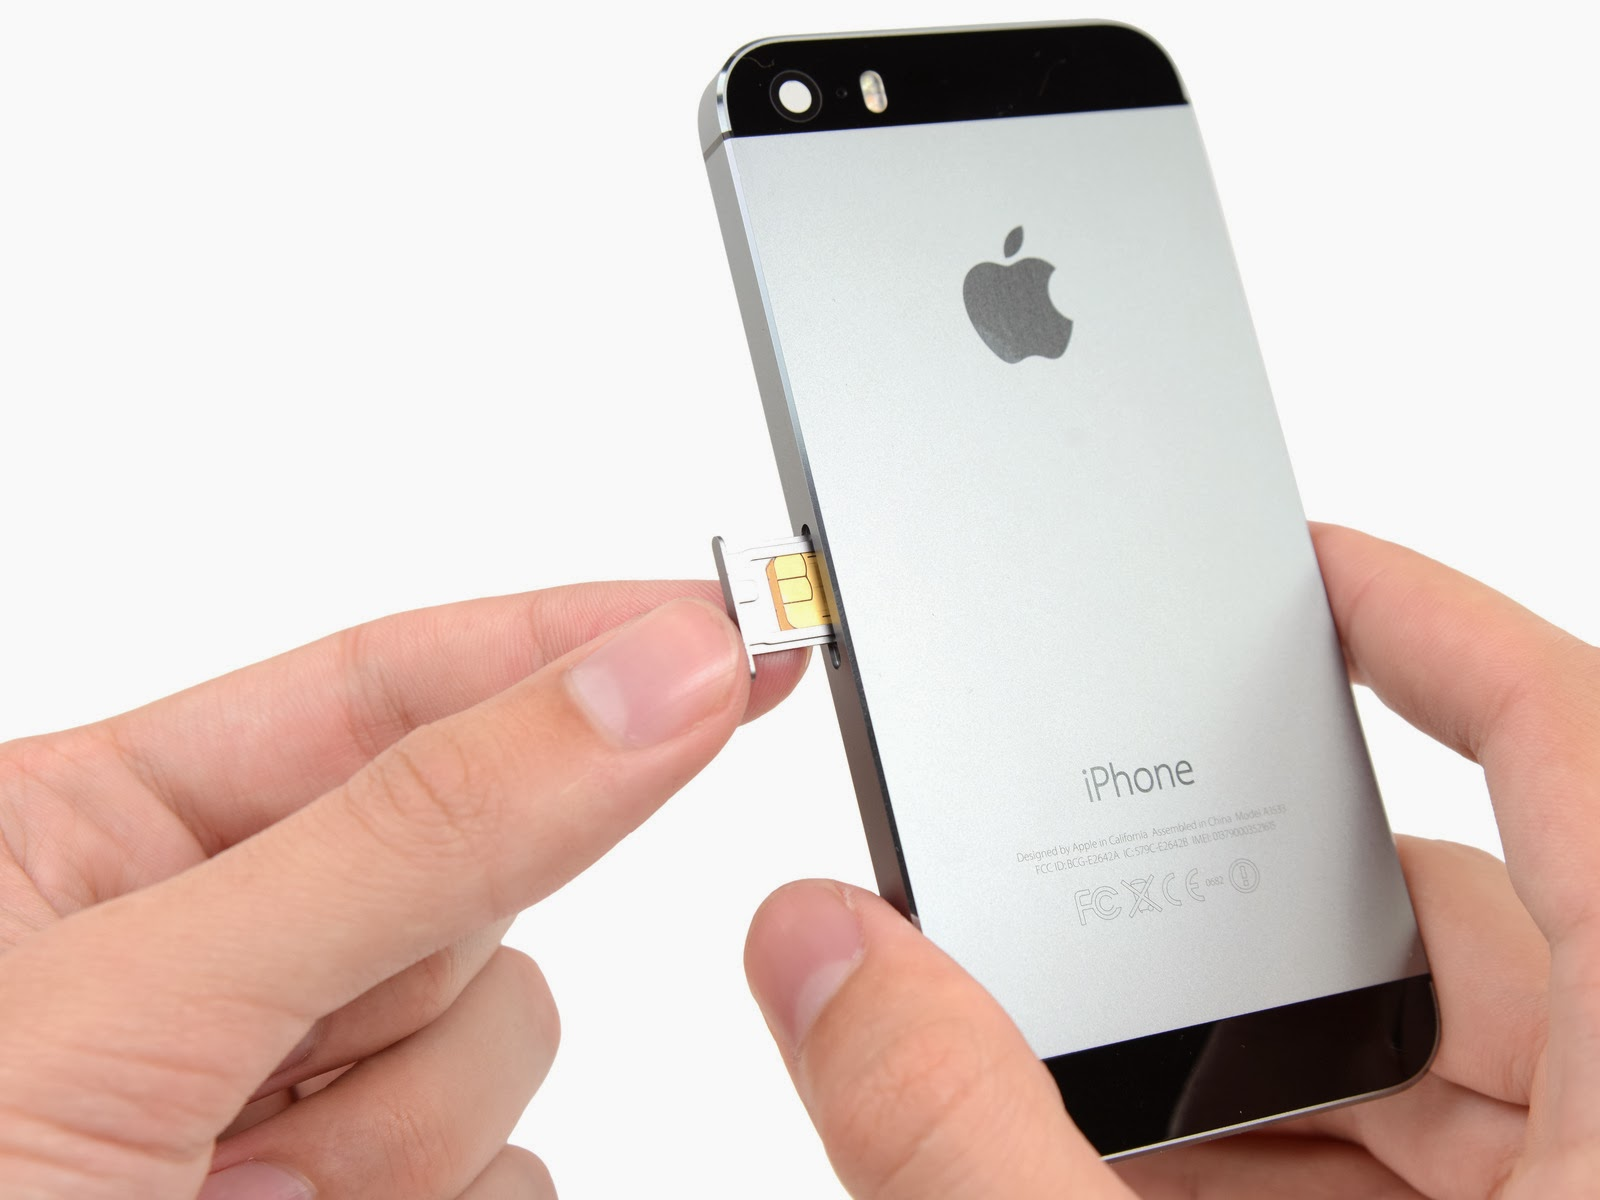 Iphone 5s Sim Card Pictures to Pin on Pinterest - PinsDaddy